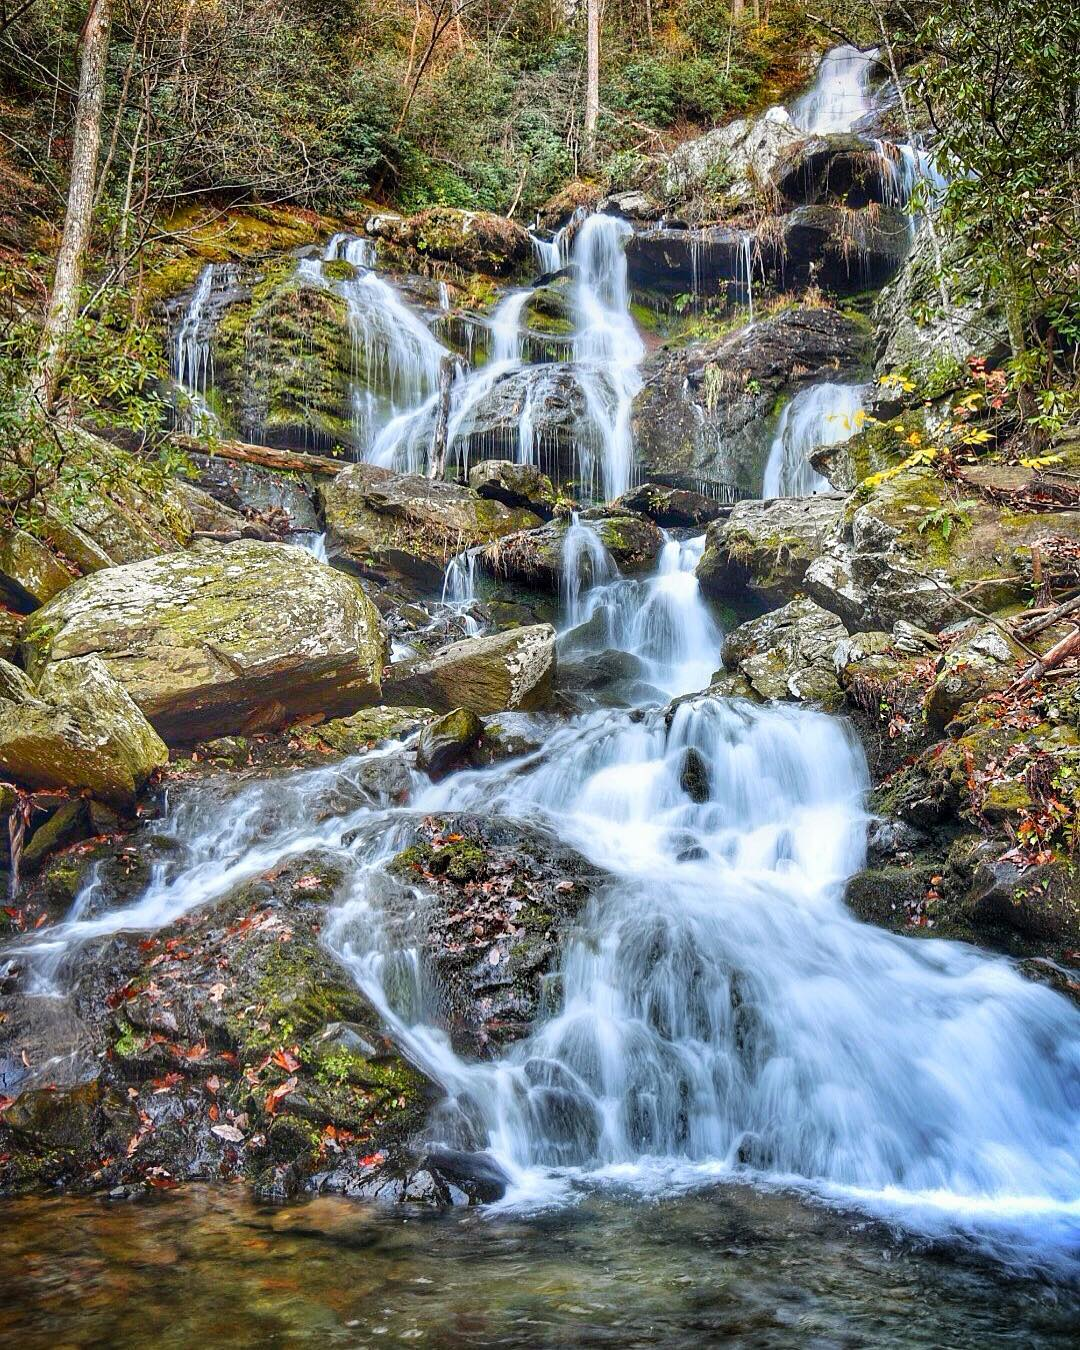 Asheville Hikes - Catawba Falls - Original Photo